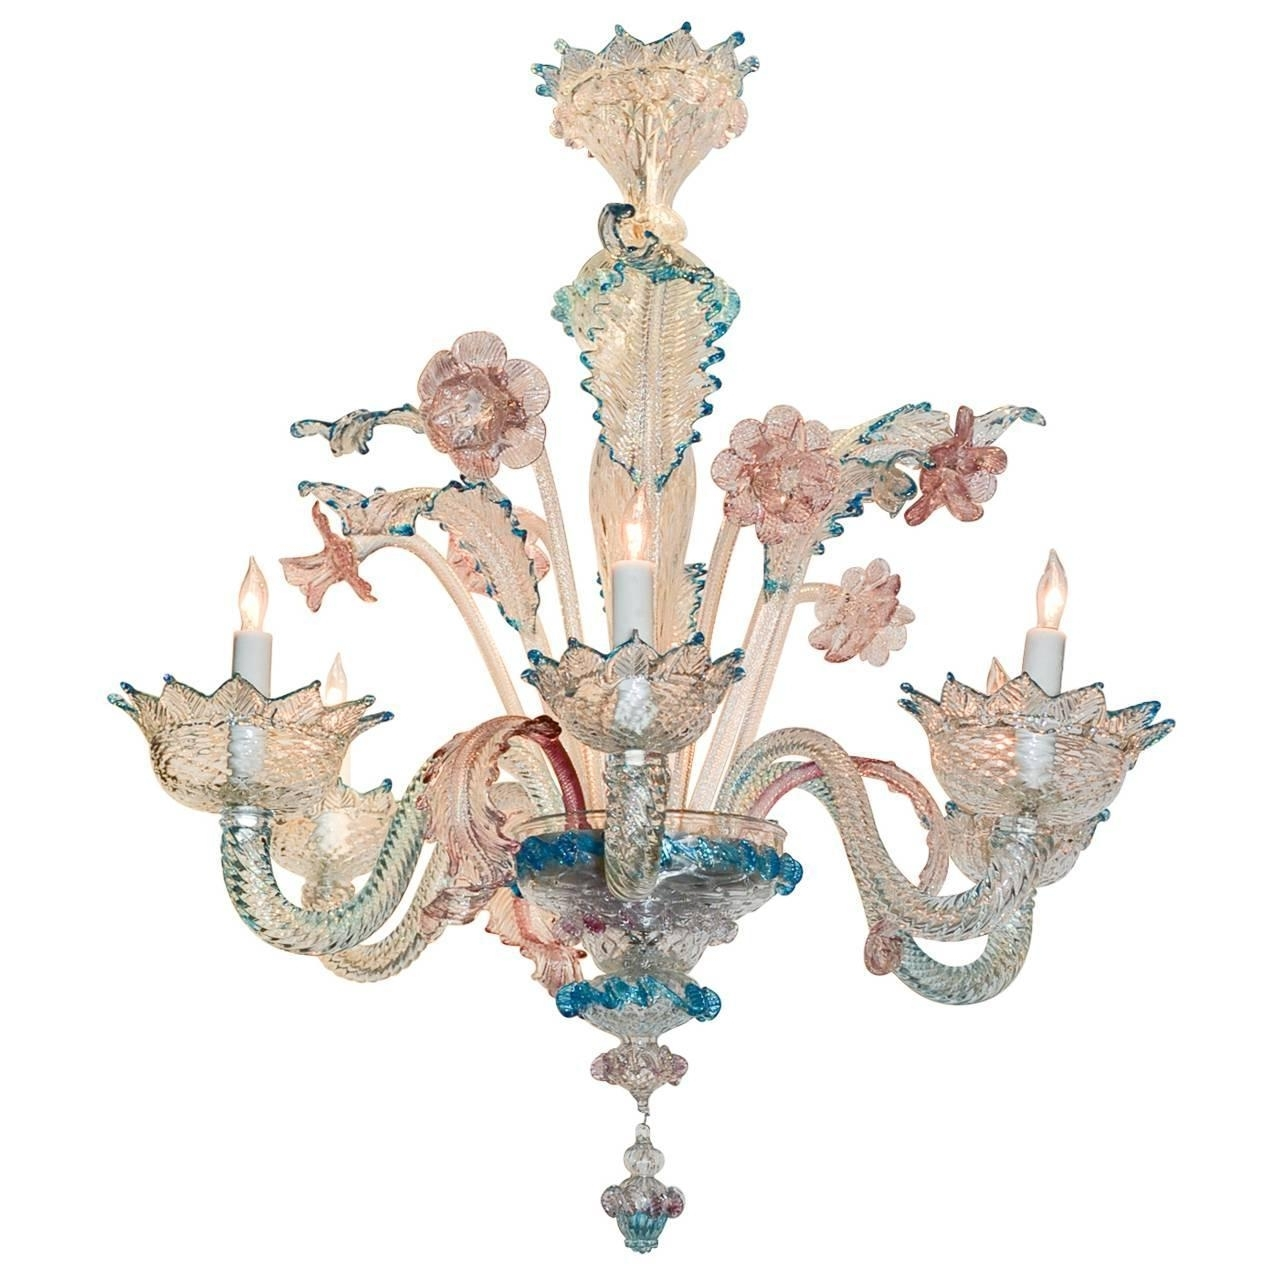 Lovely Antique Blue And Pink Murano Glass Chandelier At 1stdibs Throughout Favorite Turquoise Blue Glass Chandeliers (View 16 of 20)